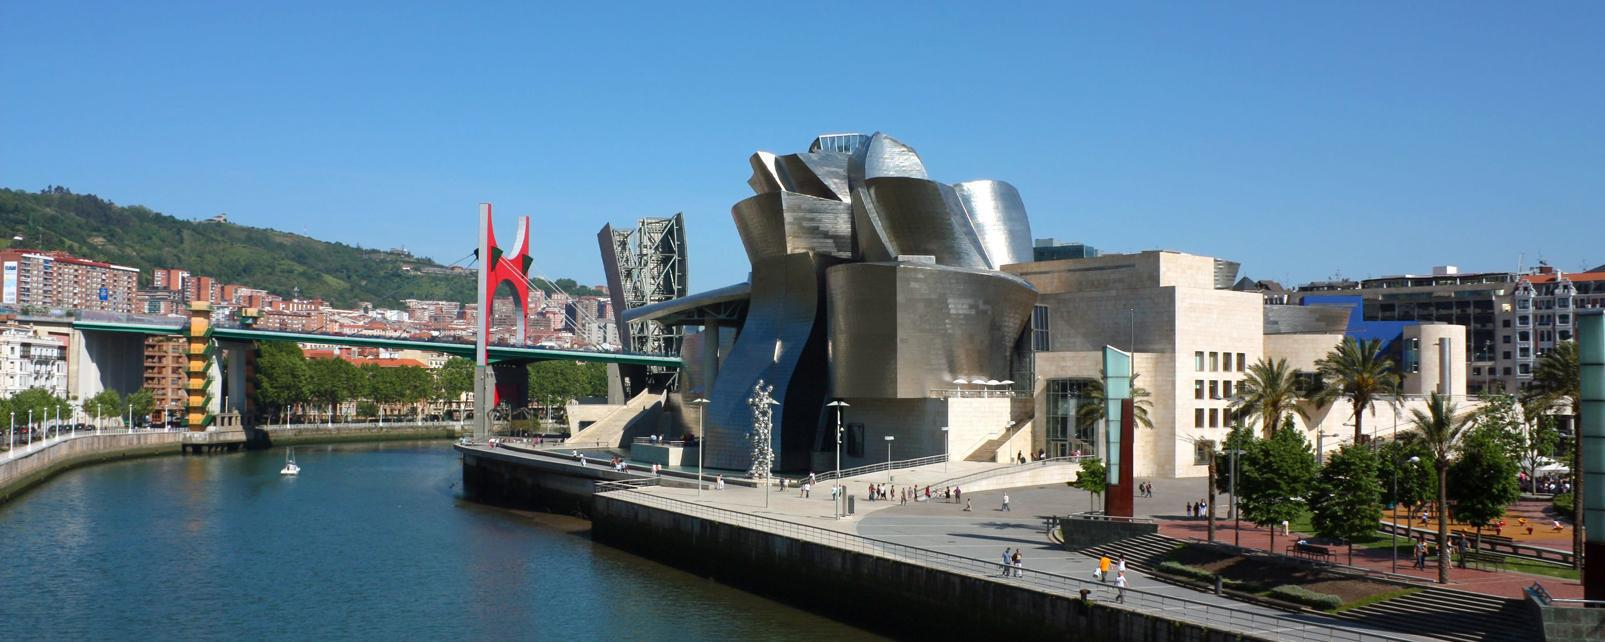 Weather Forecast Bilbao In May Best Time To Go